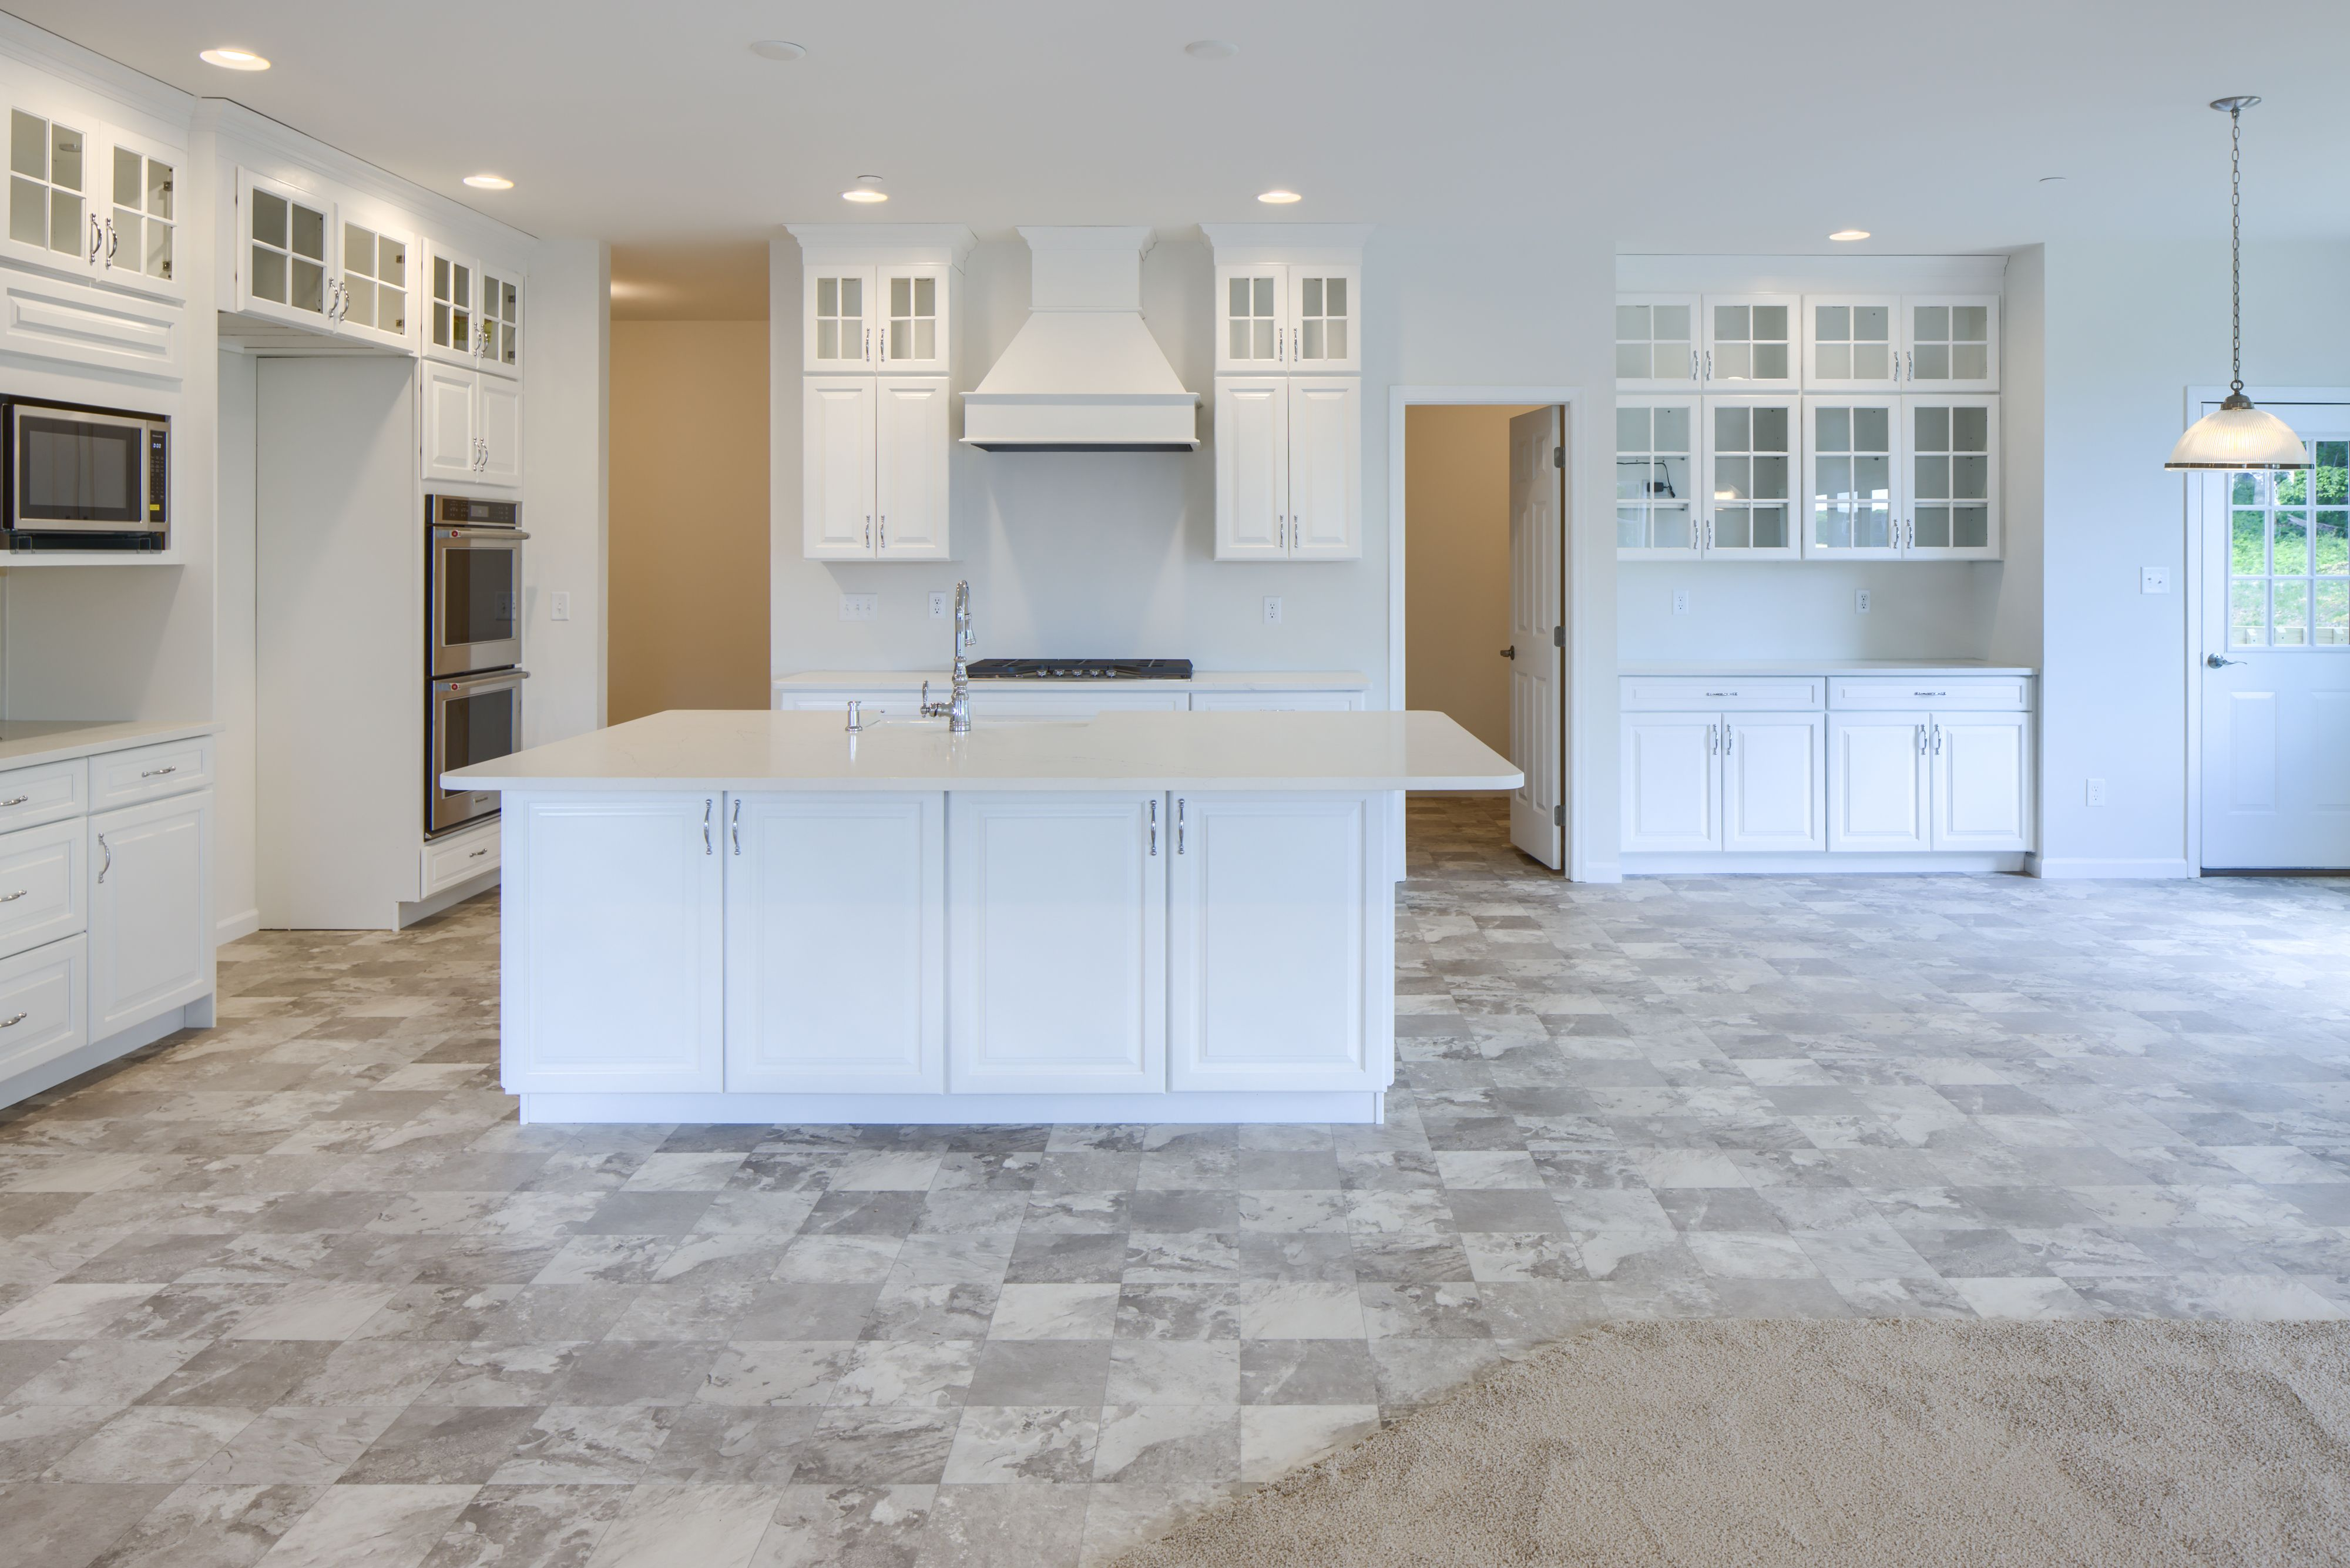 Kitchen featured in the Covington Traditional By Keystone Custom Homes in Baltimore, MD